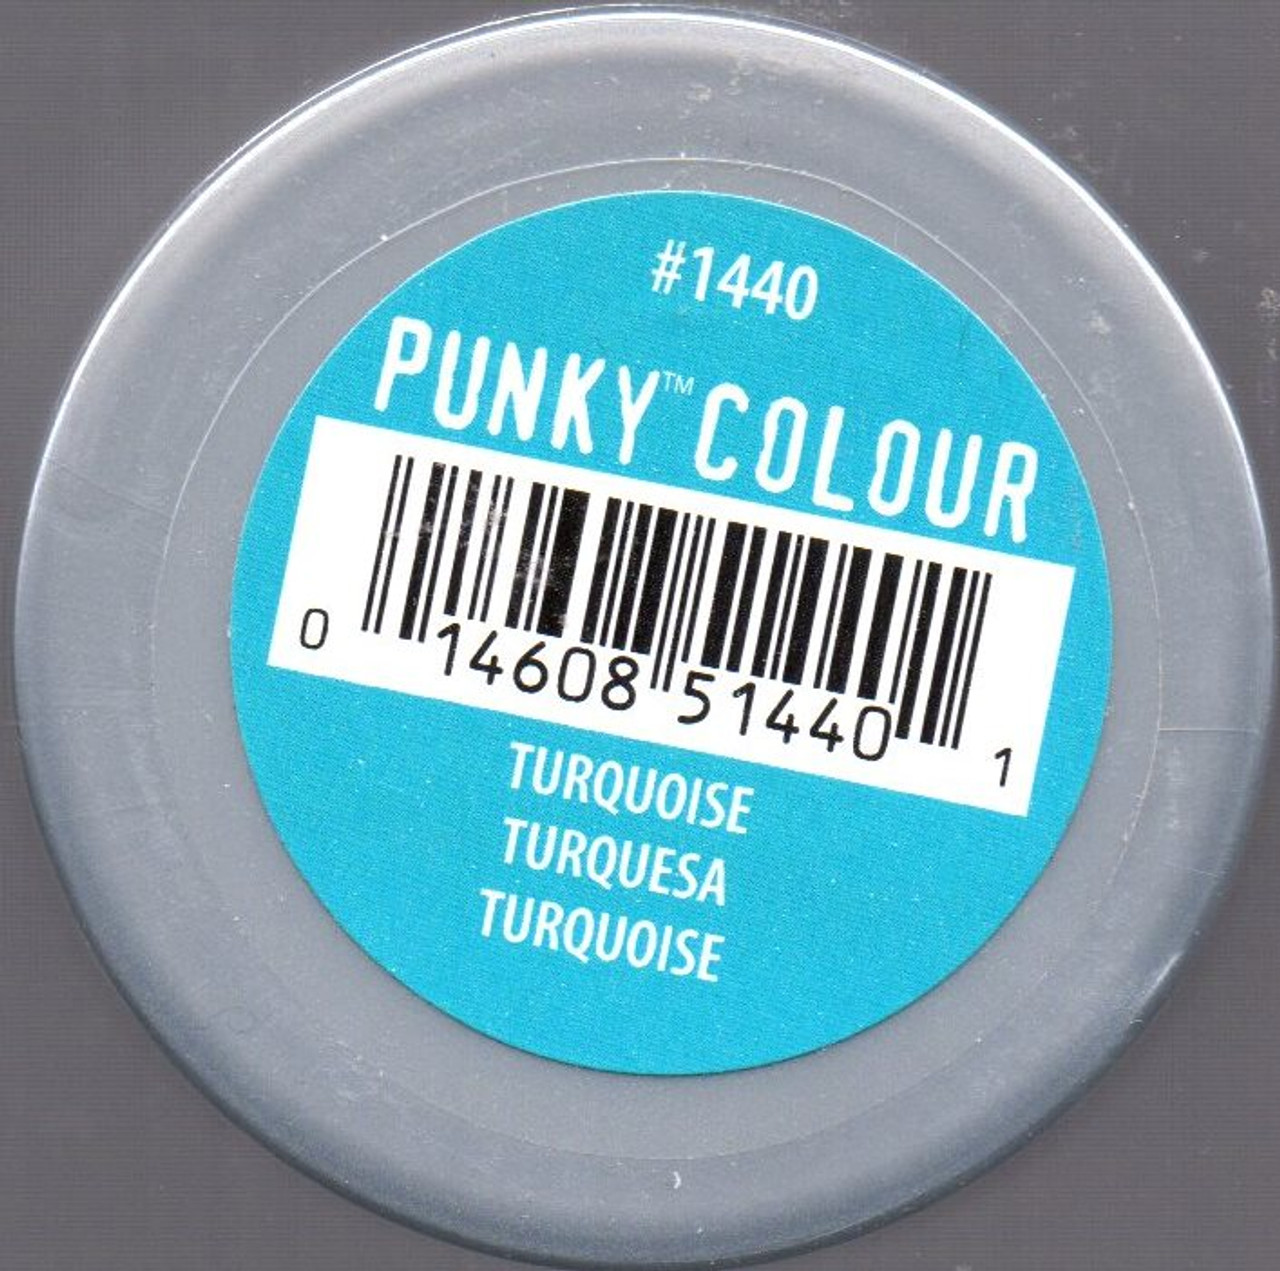 Punky Colour-TURQUOISE-100ml HAIR DYE Jerome Russell- New/Sealed-Punk